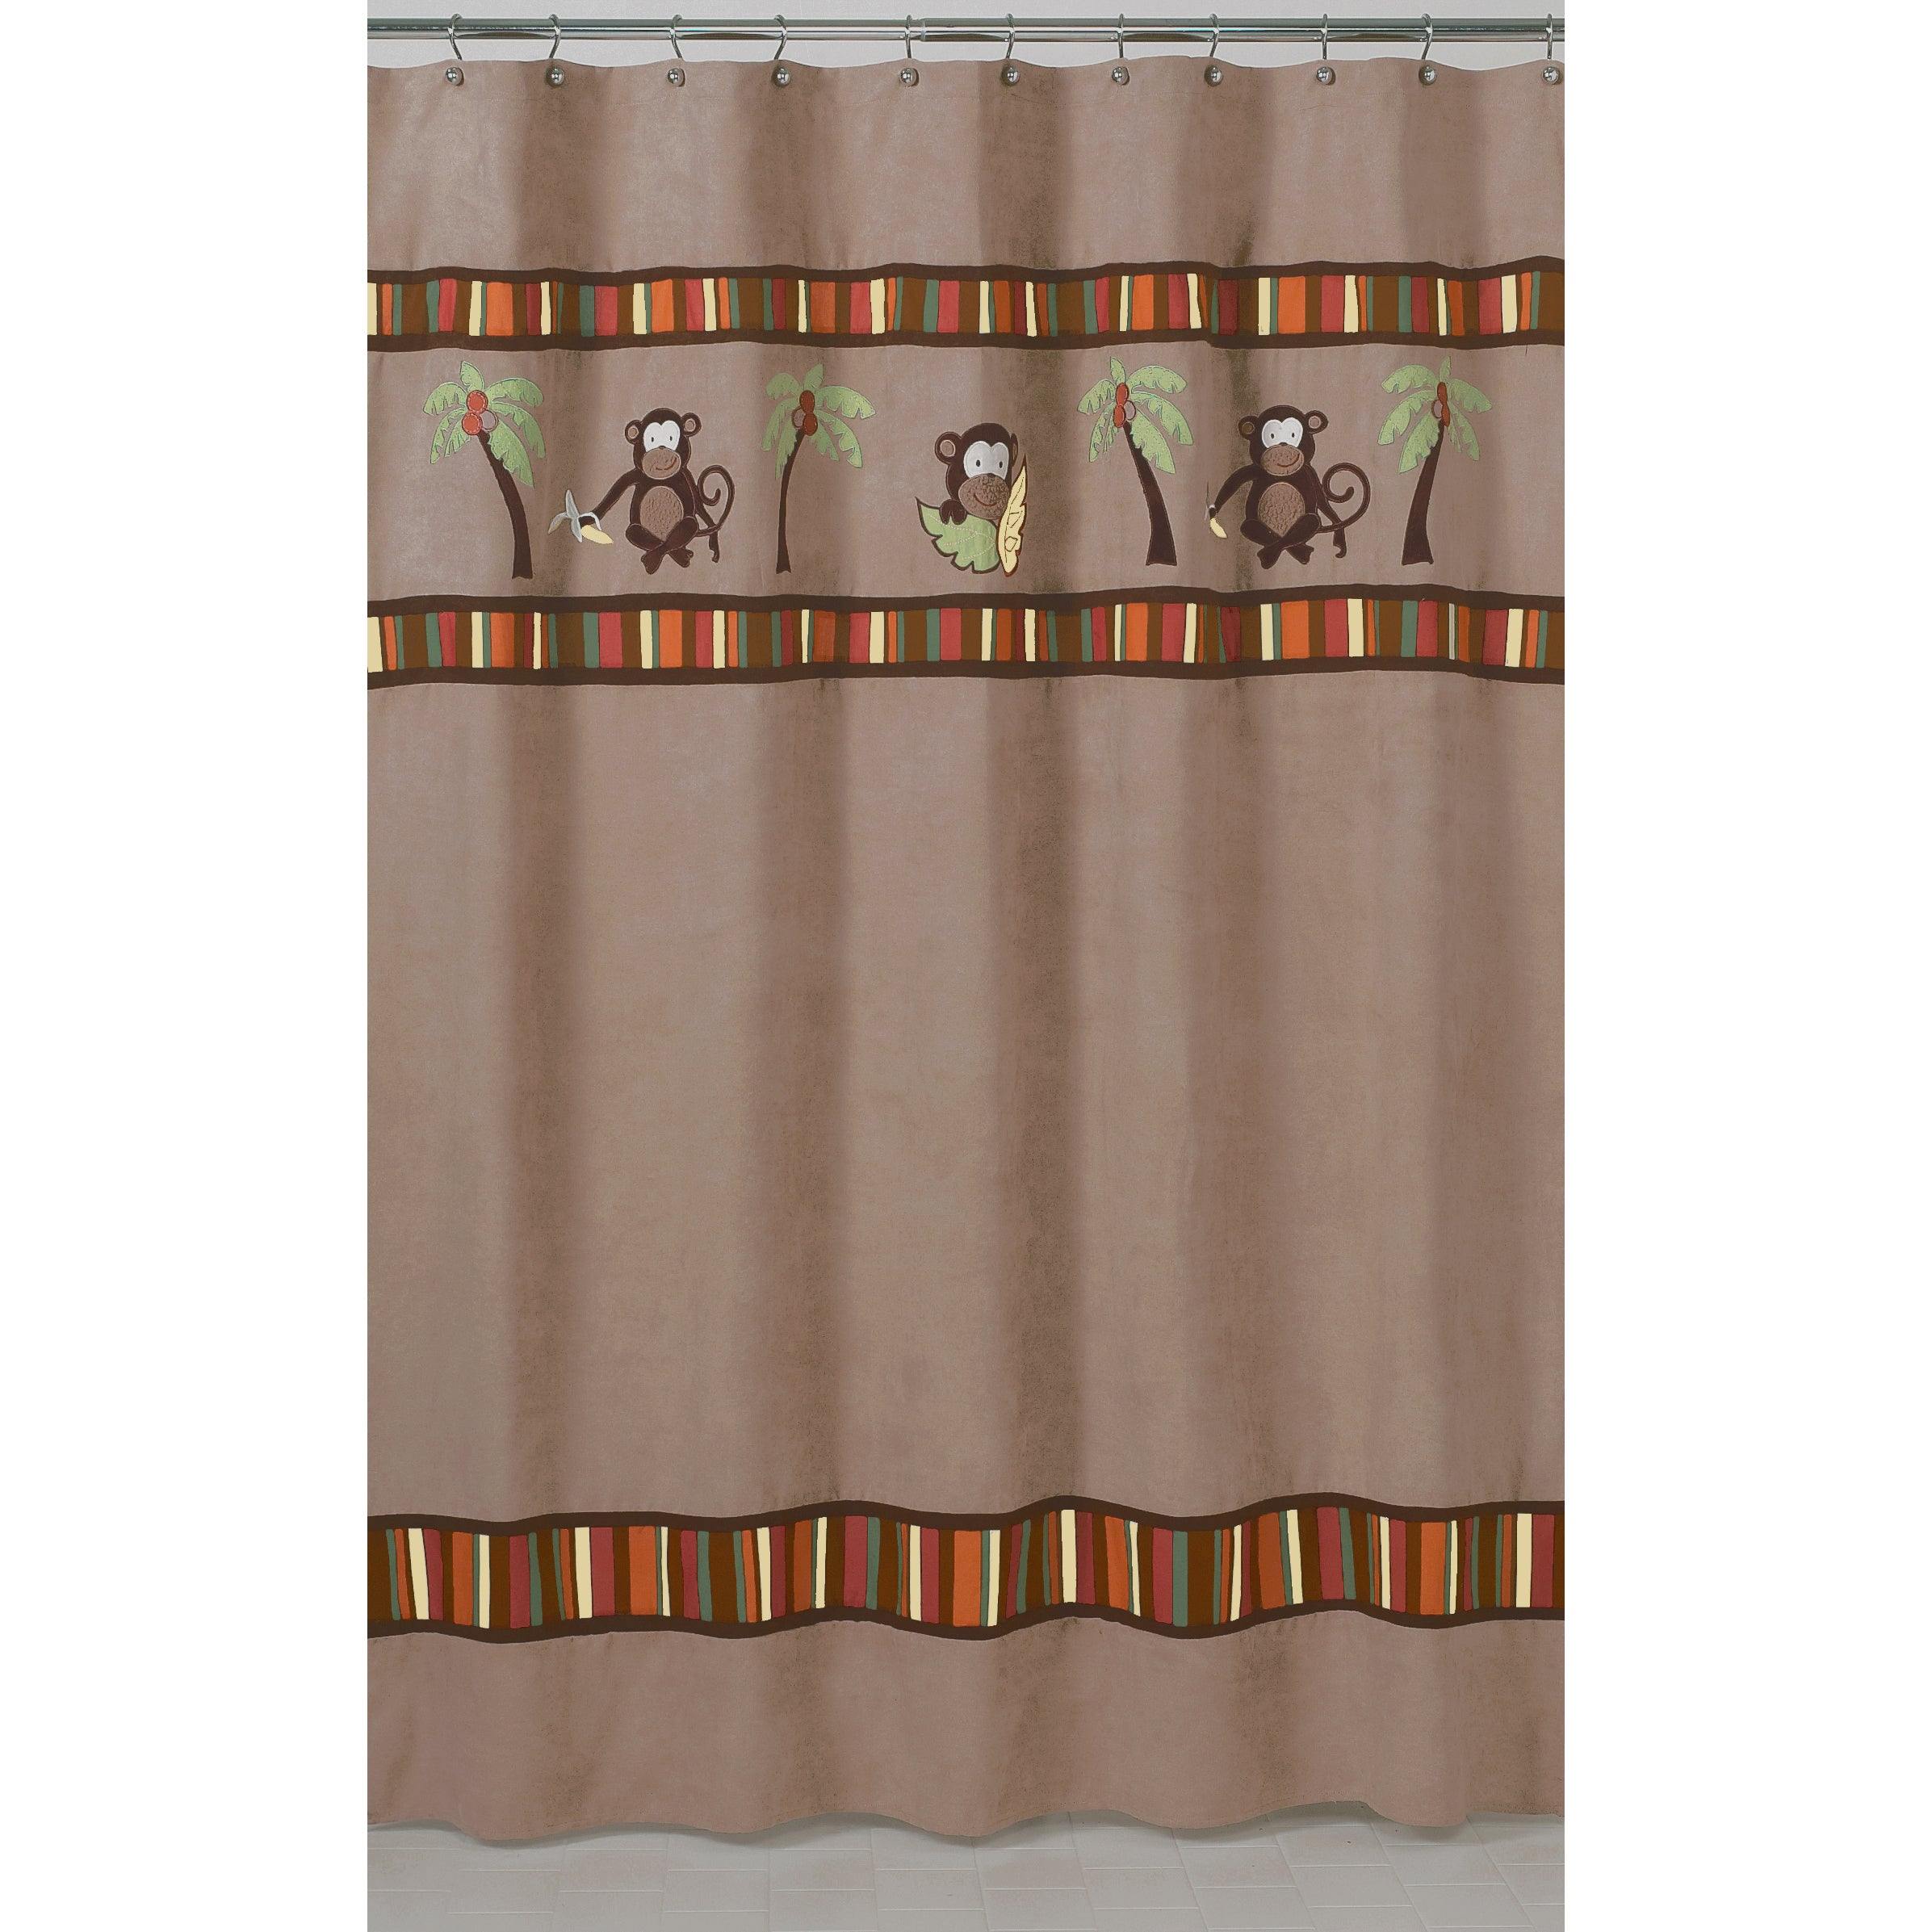 Sweet Jojo Designs Monkey Kids Shower Curtain at Sears.com